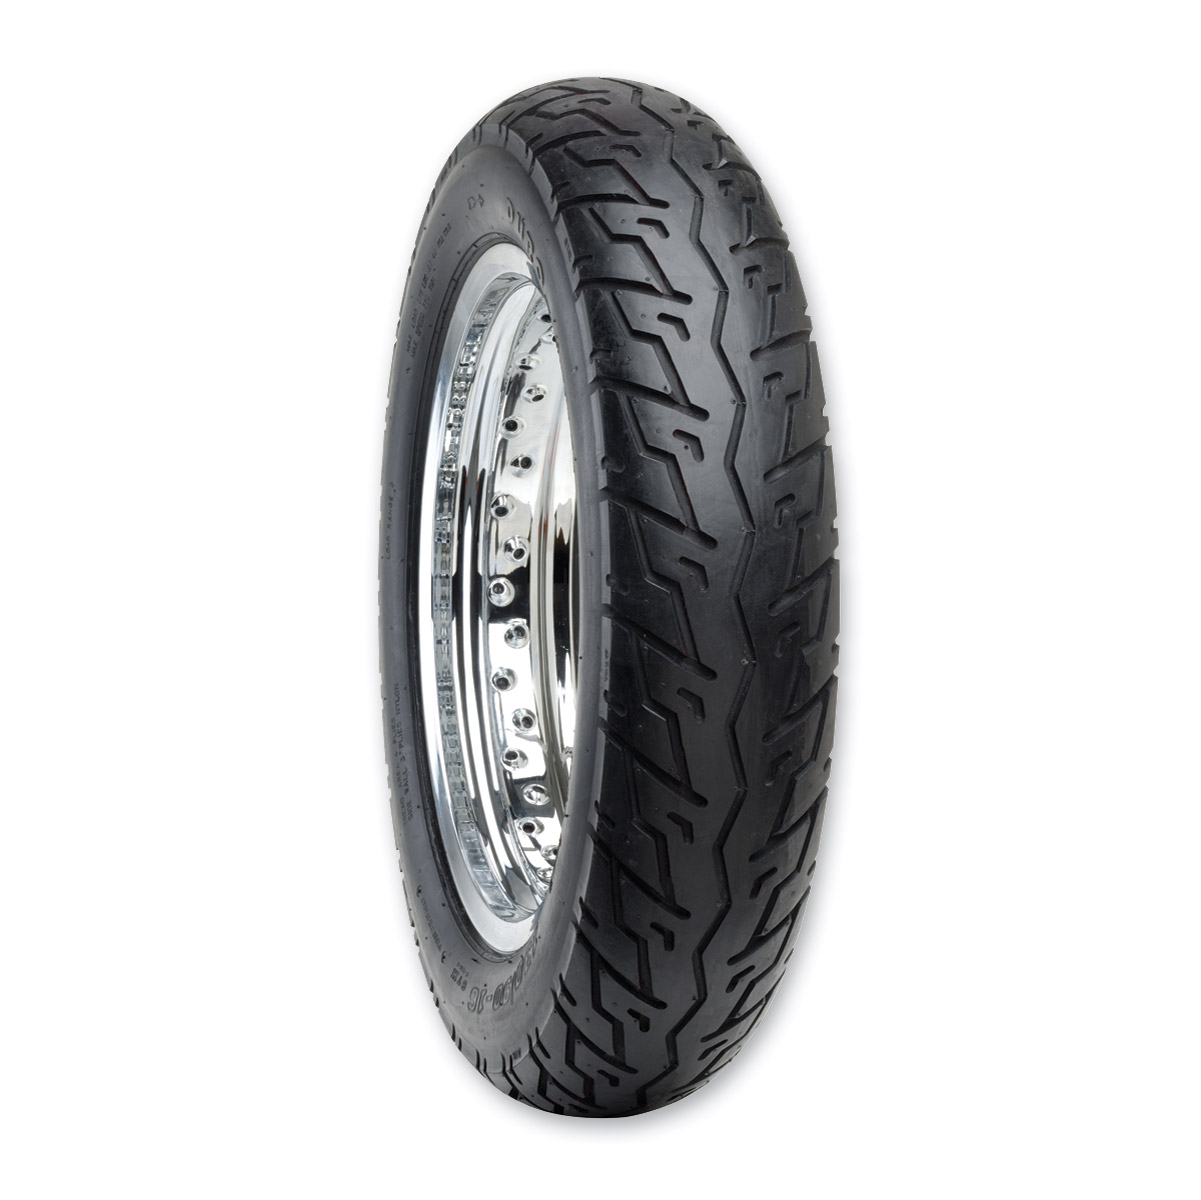 Duro Excursion 100/90-19 Front/Rear Tire